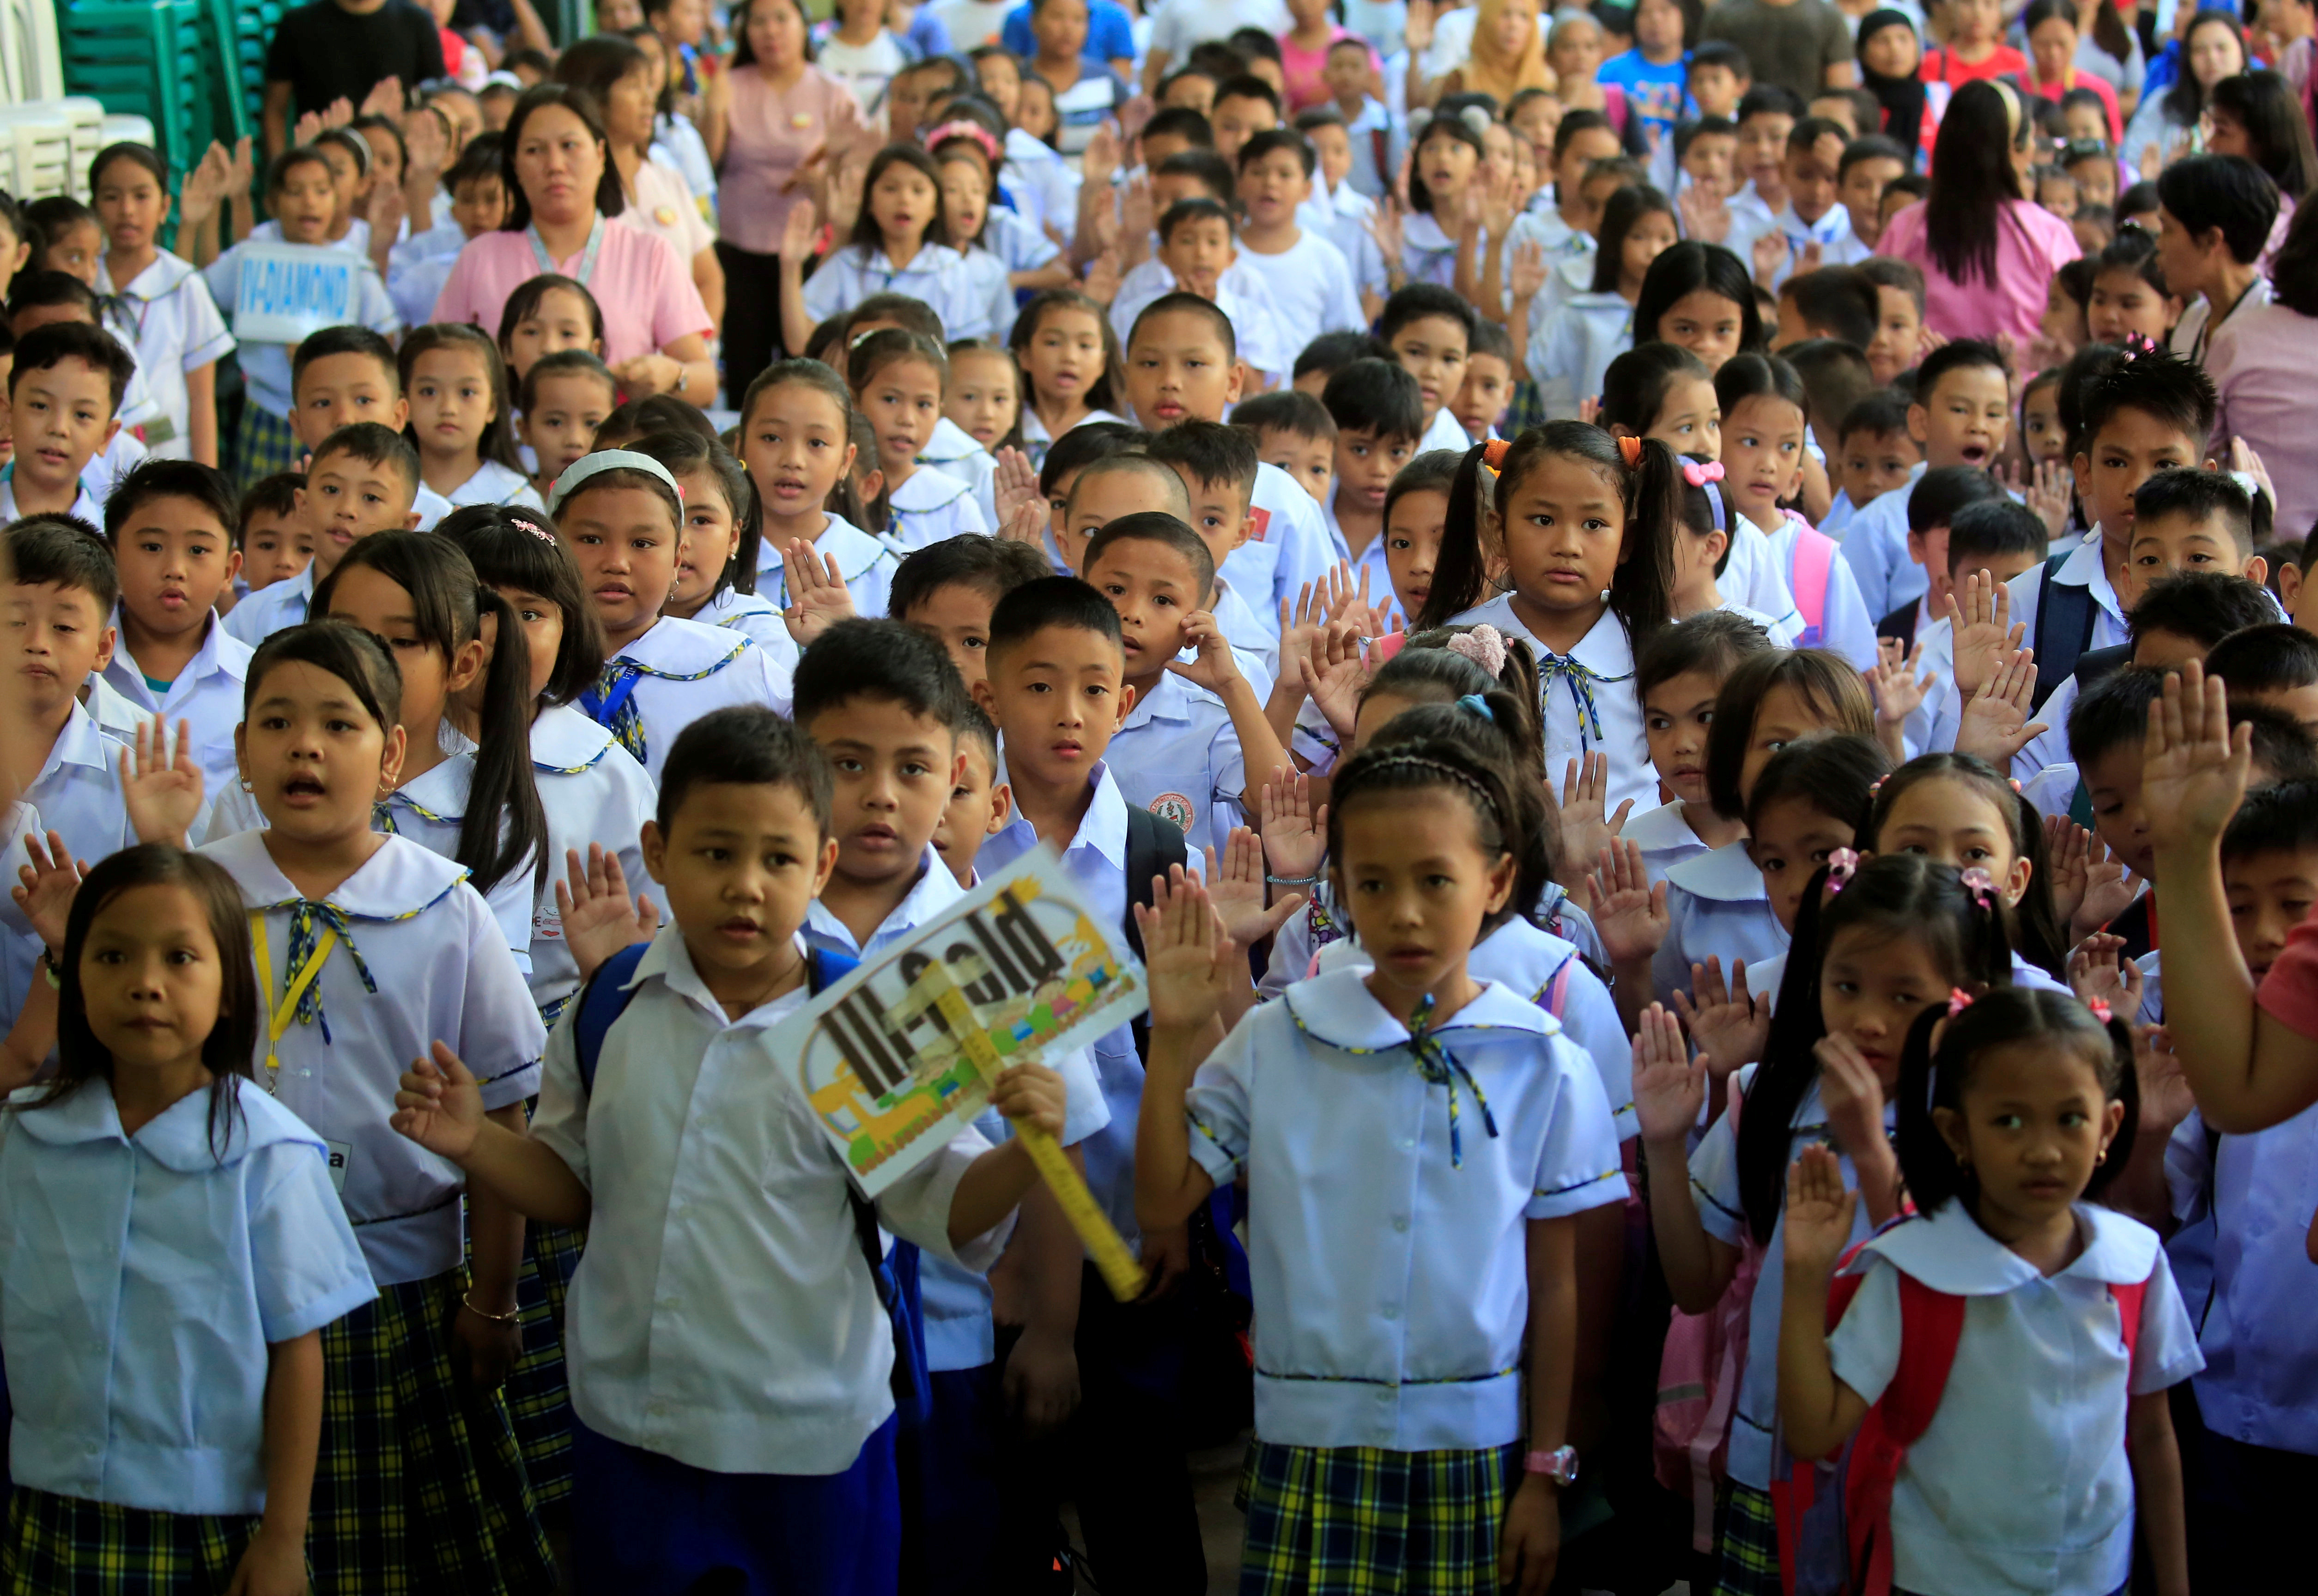 Filipino children recite an oath of allegiance to the country on the first day of the school year in Parañaque, Manila.